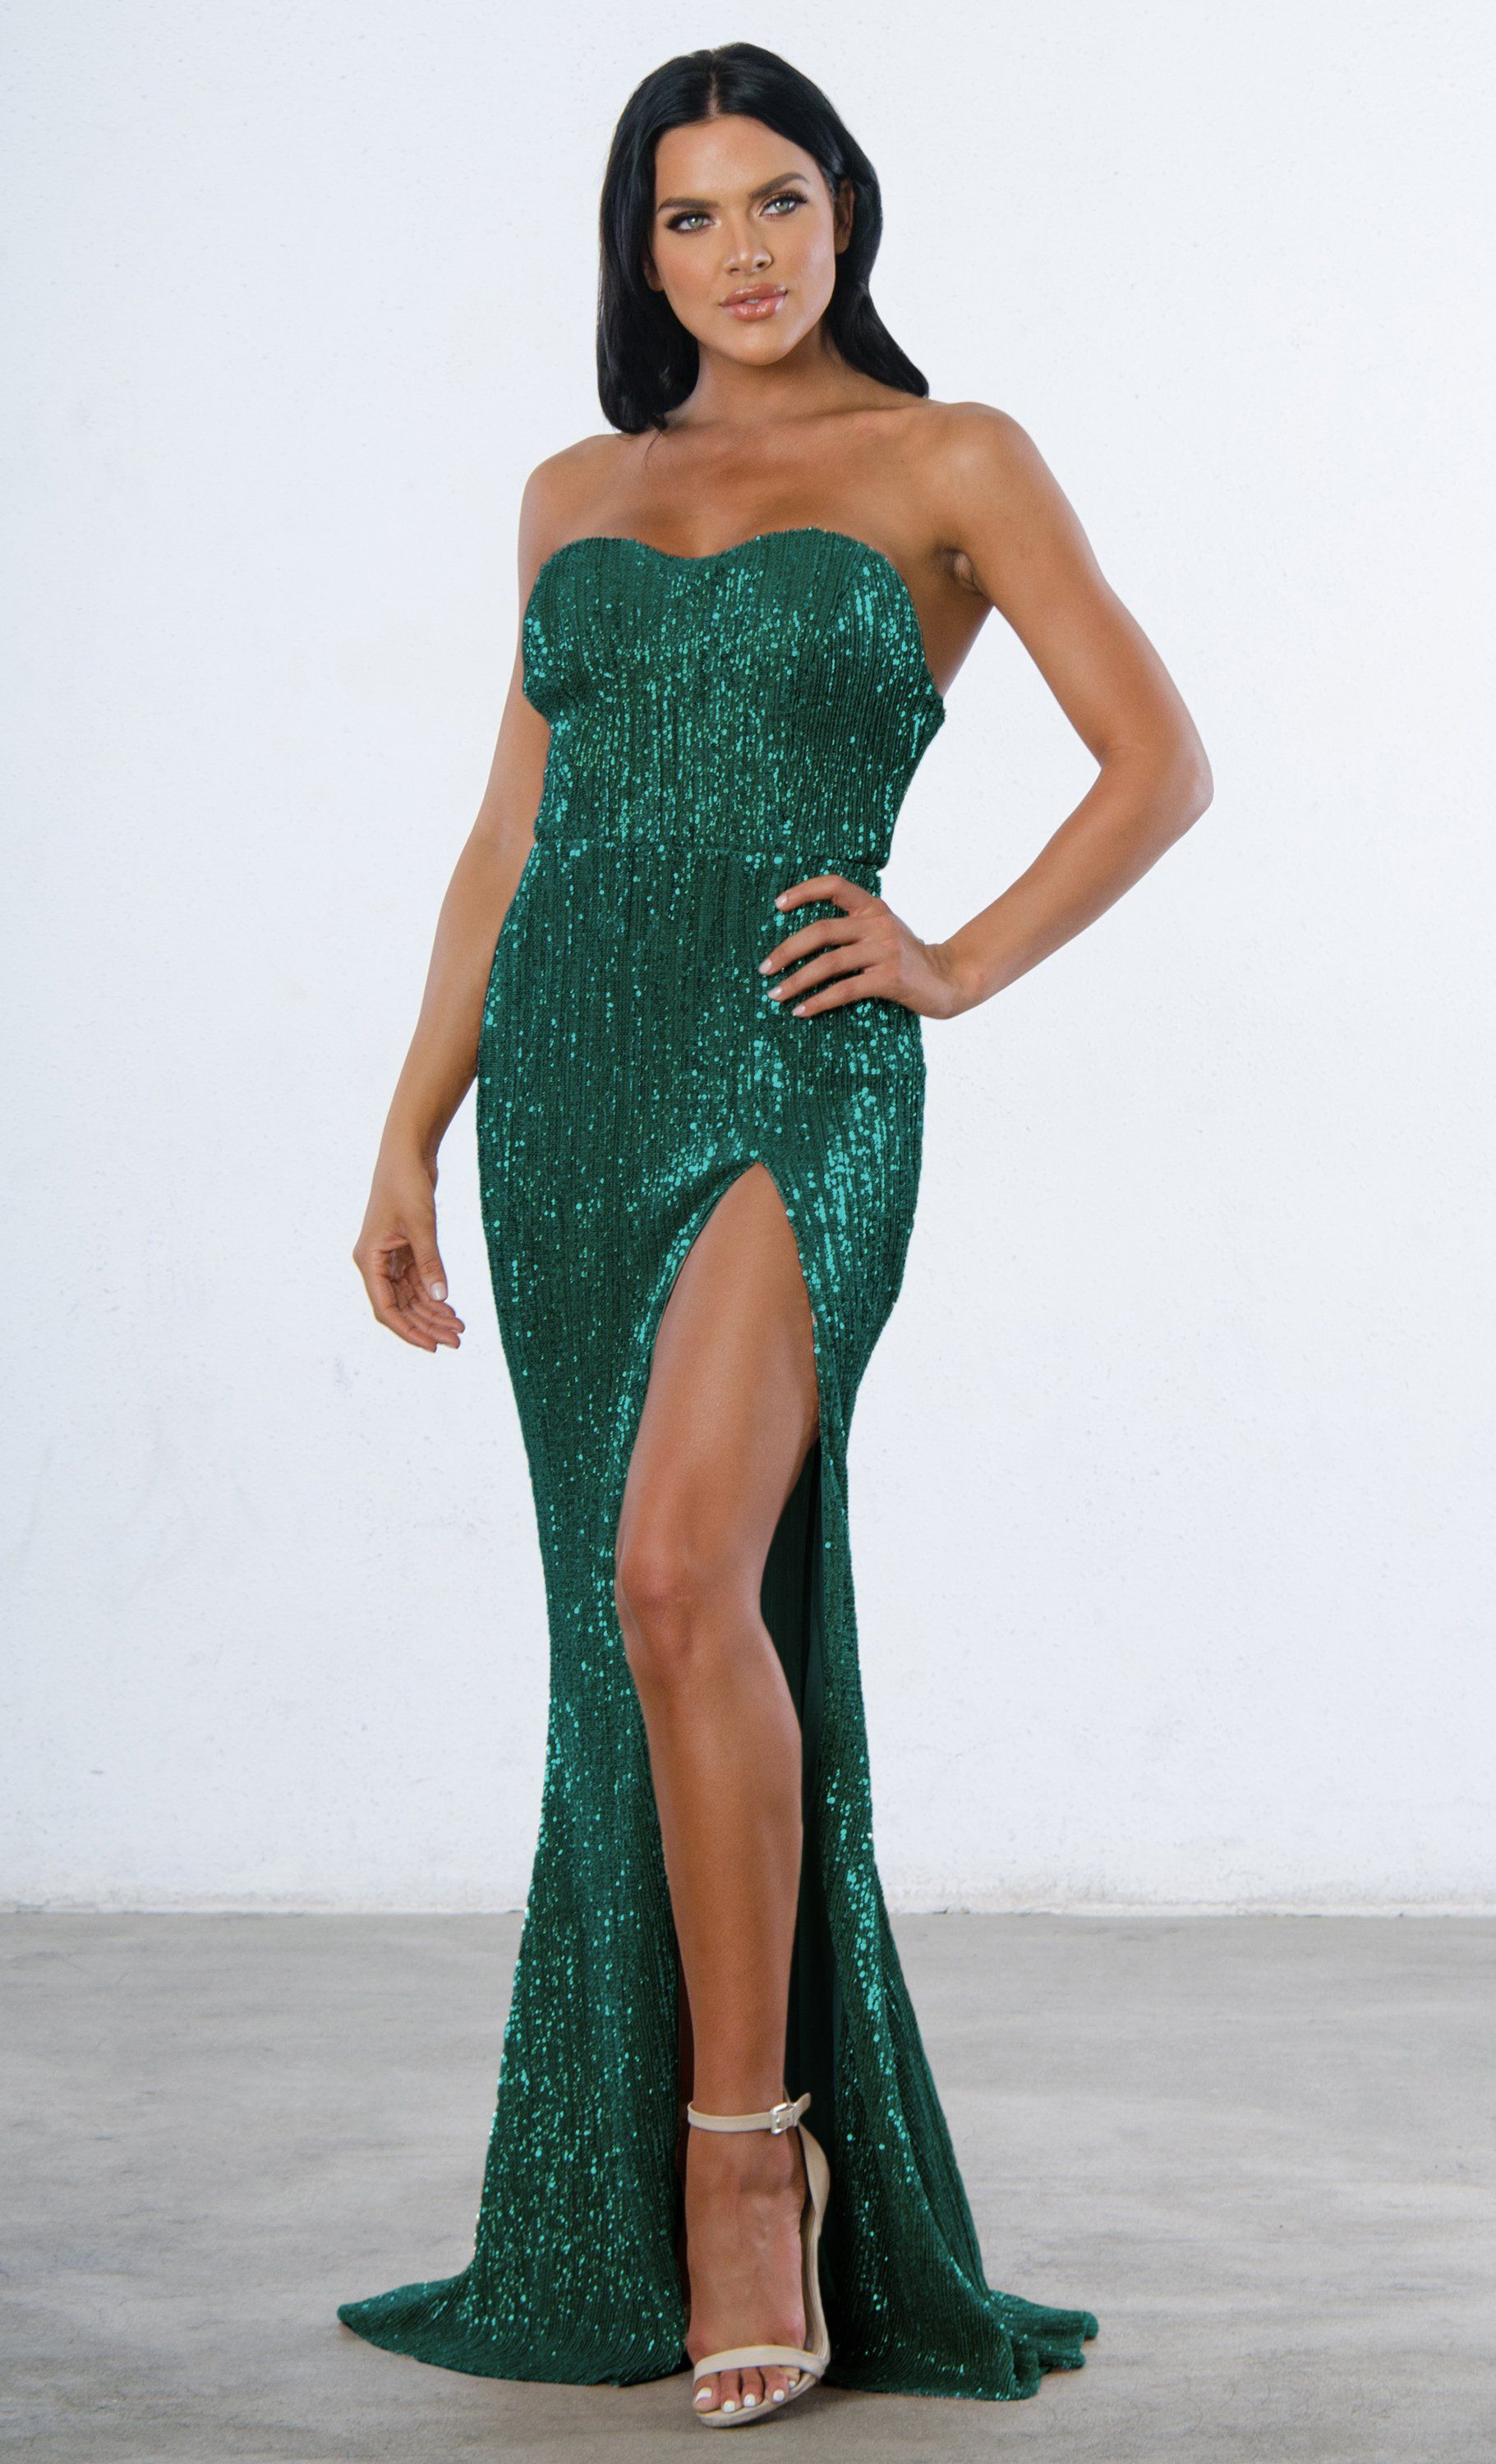 c21bc08b7c0f Indie XO Show Me Some Love Sequin Strapless Sweetheart Neck High Slit